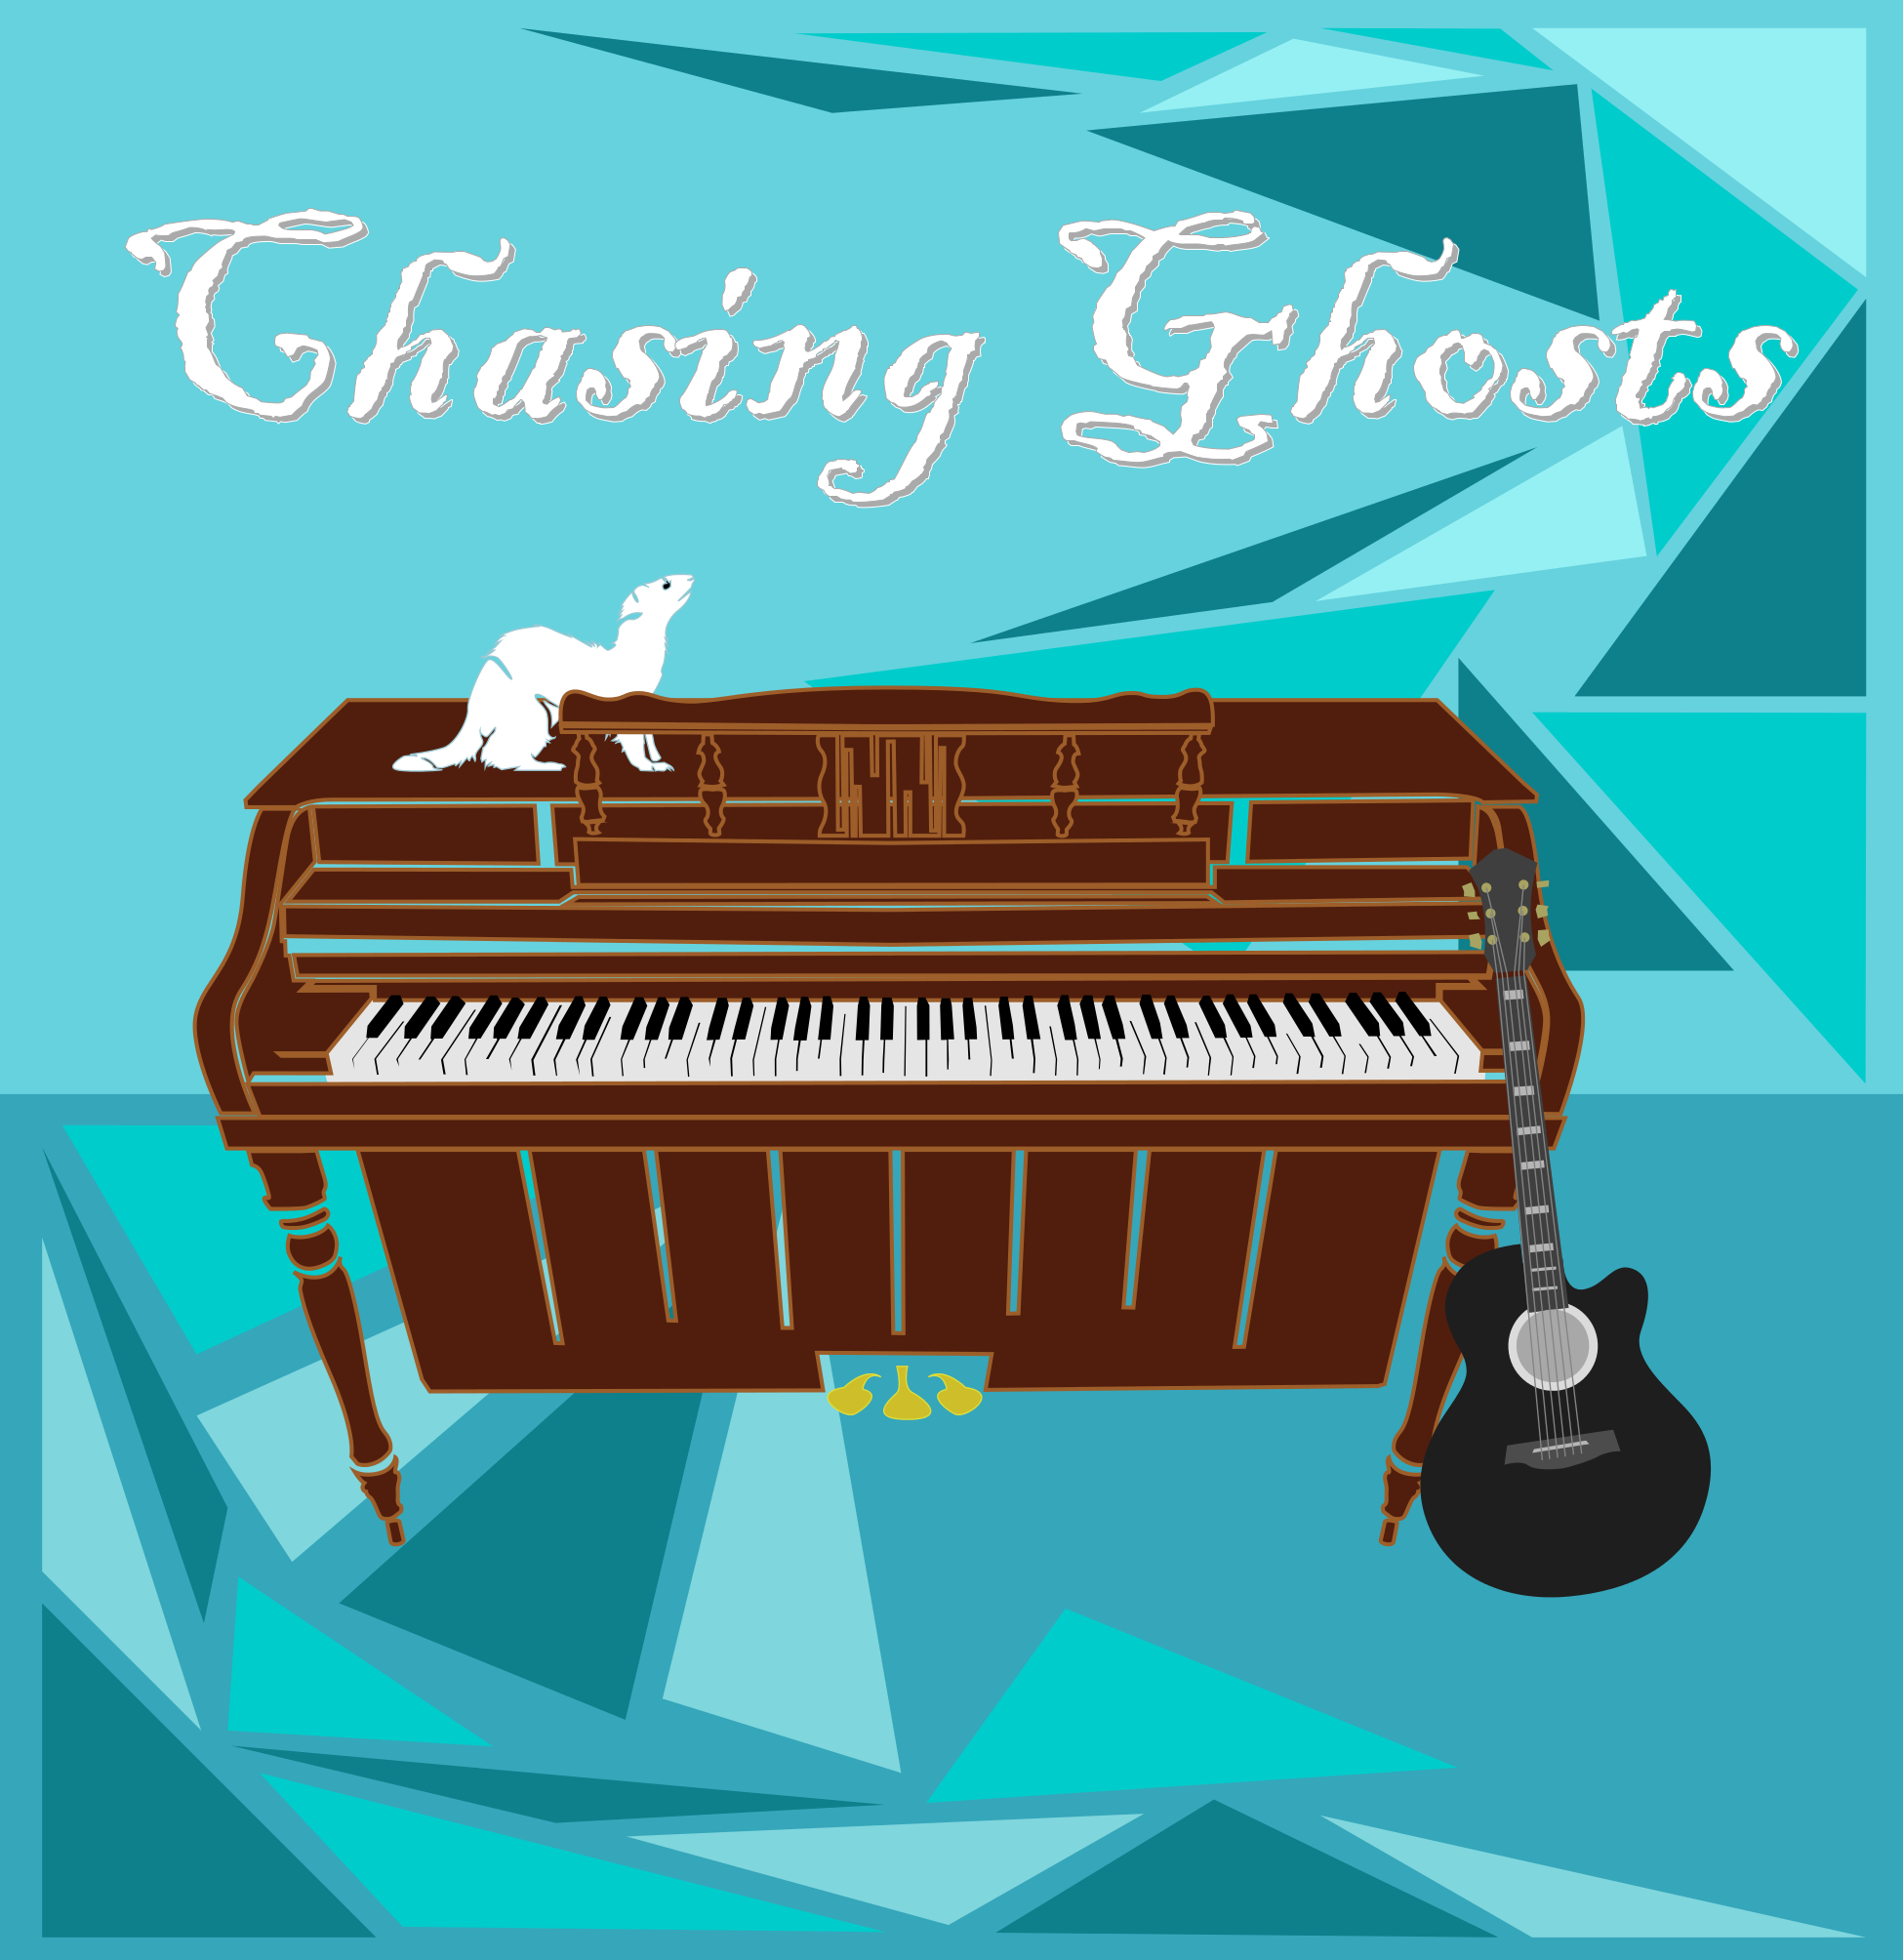 Chasing-Ghosts-bandcamp (1)